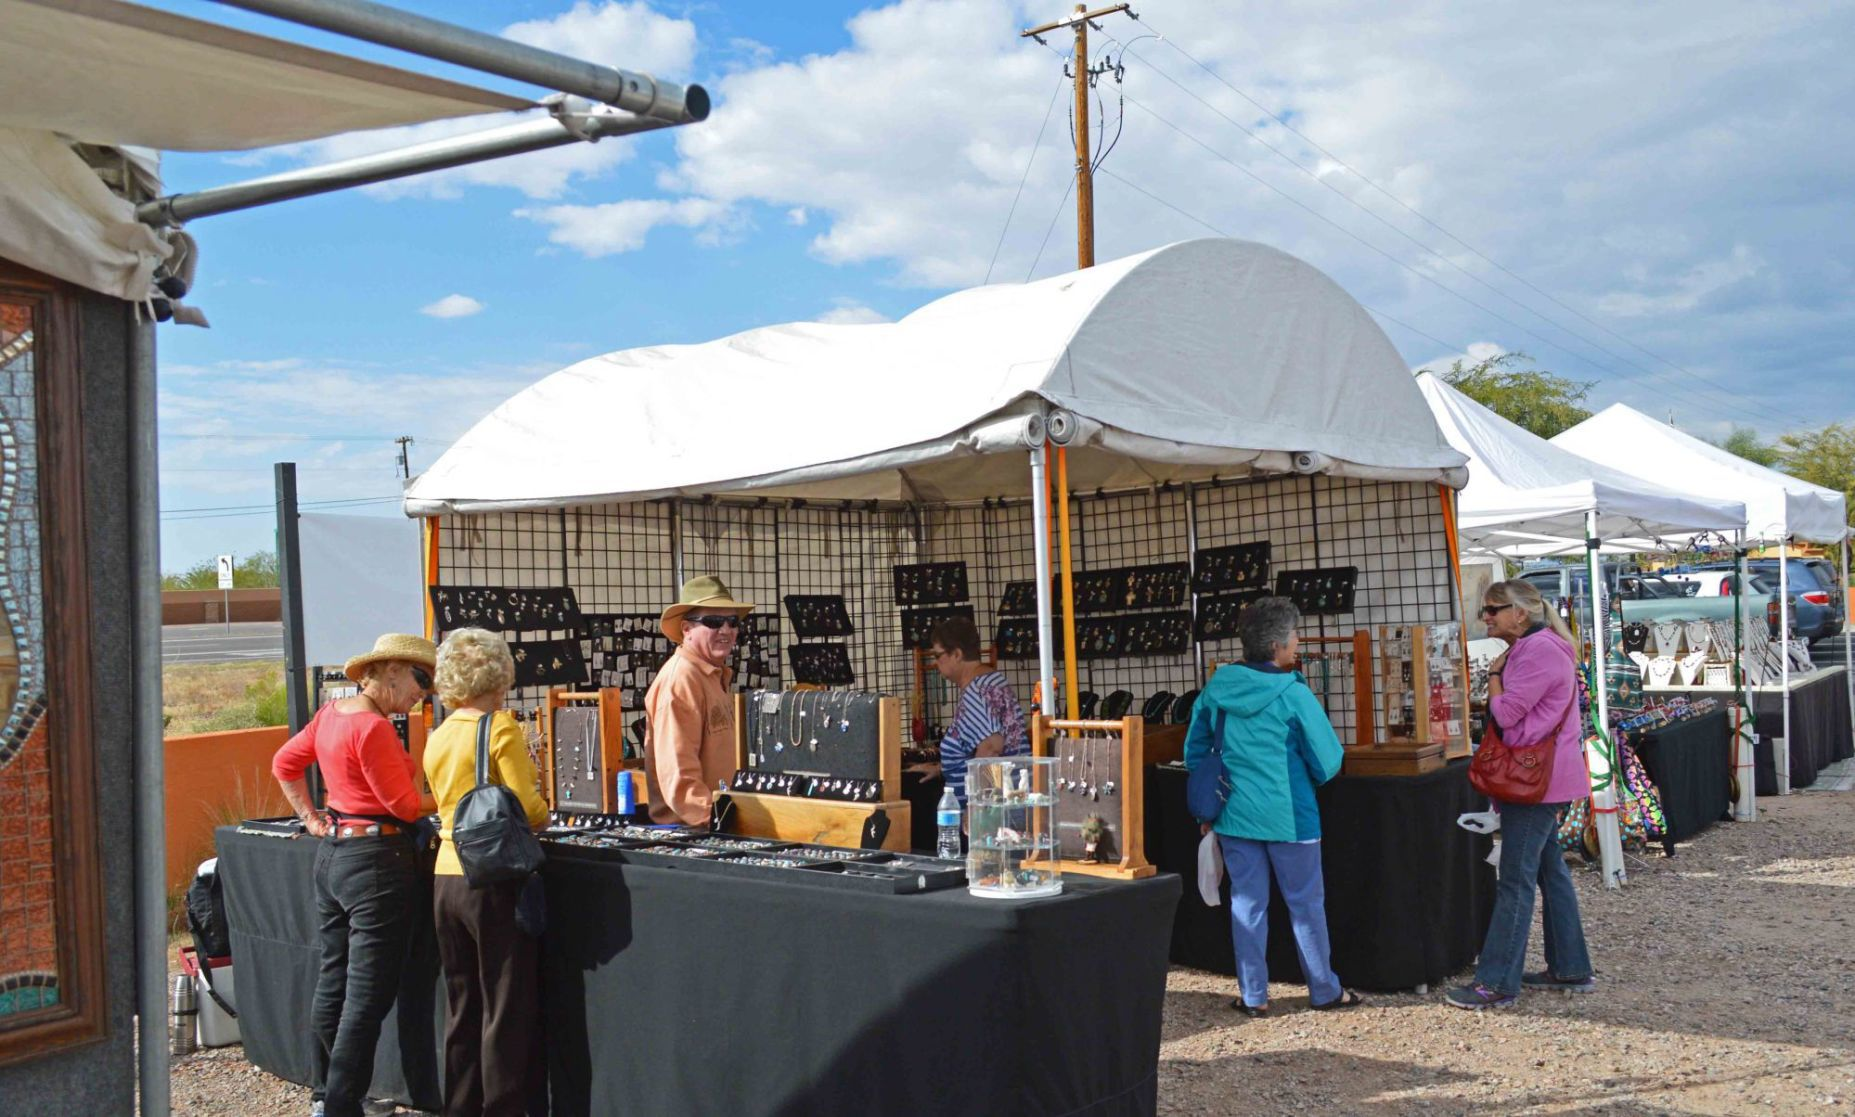 Arts and Crafts Festival u2014 Tanque Verde & Tucson craft fair flea markets and shopping March 4-10 ...